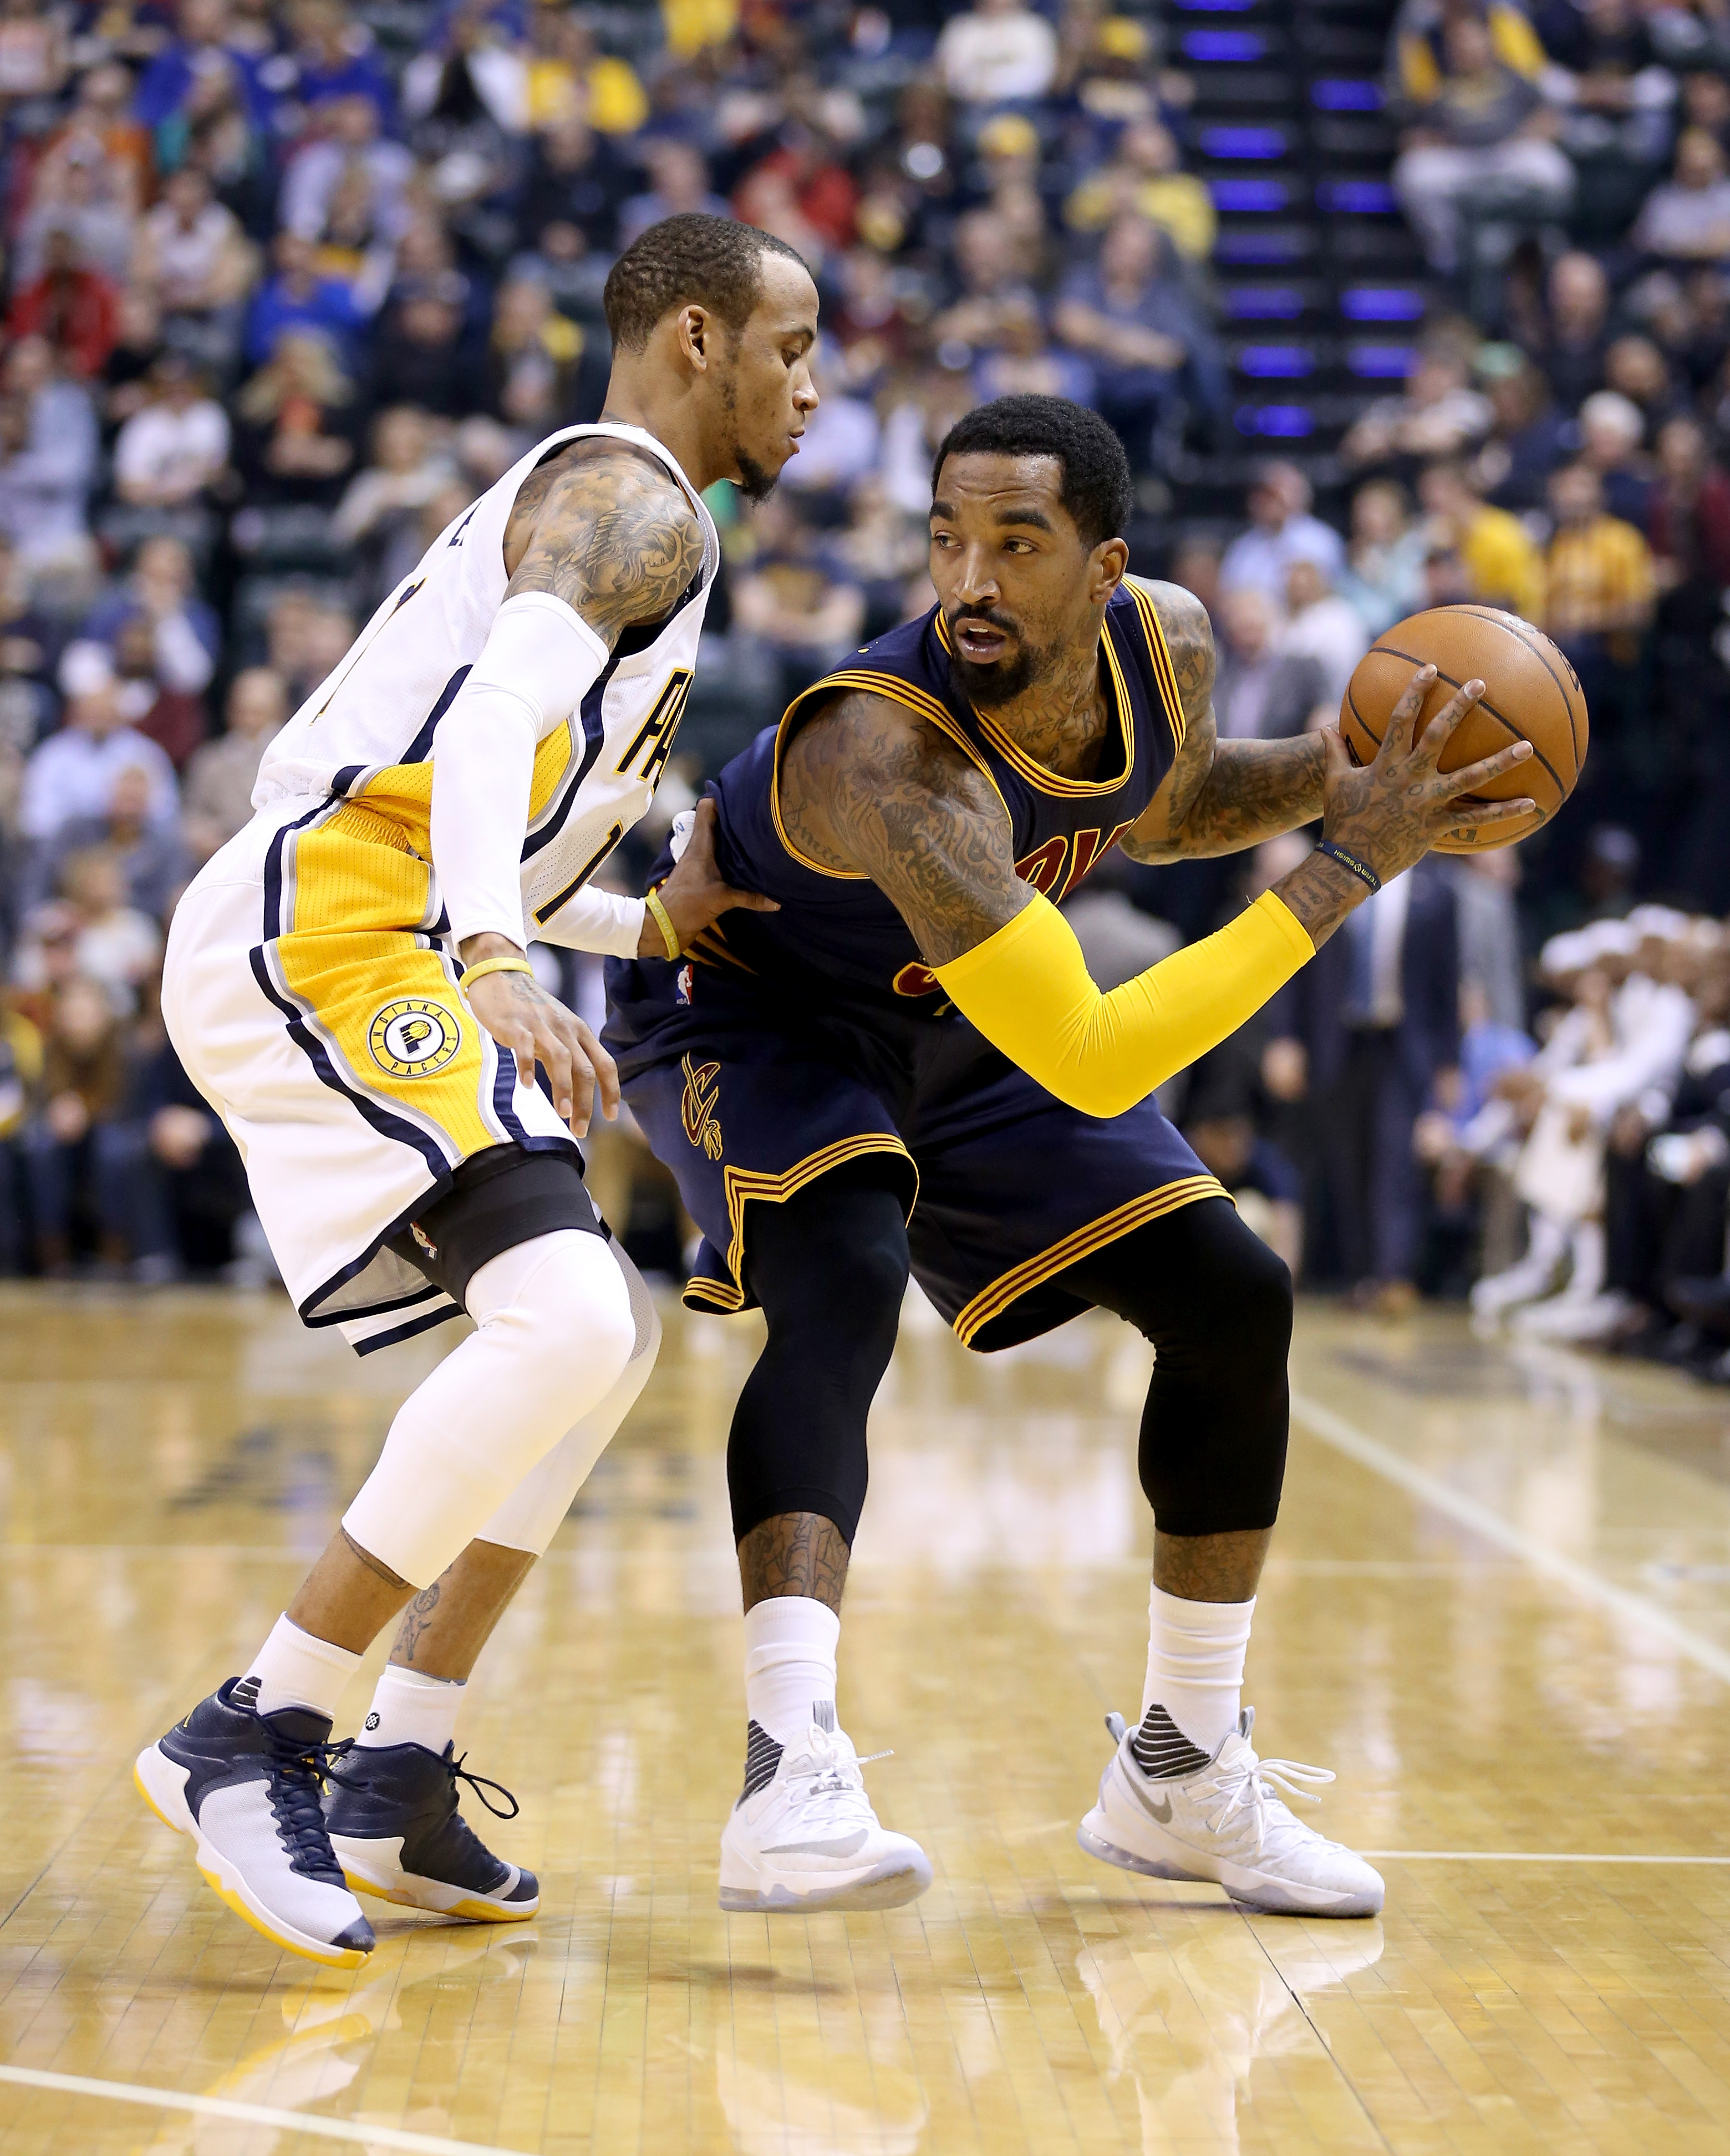 INDIANAPOLIS, INDIANA - APRIL 06: J.R. Smith #5 of the Cleveland Cavaliers looks to pass the ball during the game against the Indiana Pacers at Bankers Life Fieldhouse on April 6, 2016 in Indianapolis, Indiana.   (Photo by Andy Lyons/Getty Images)